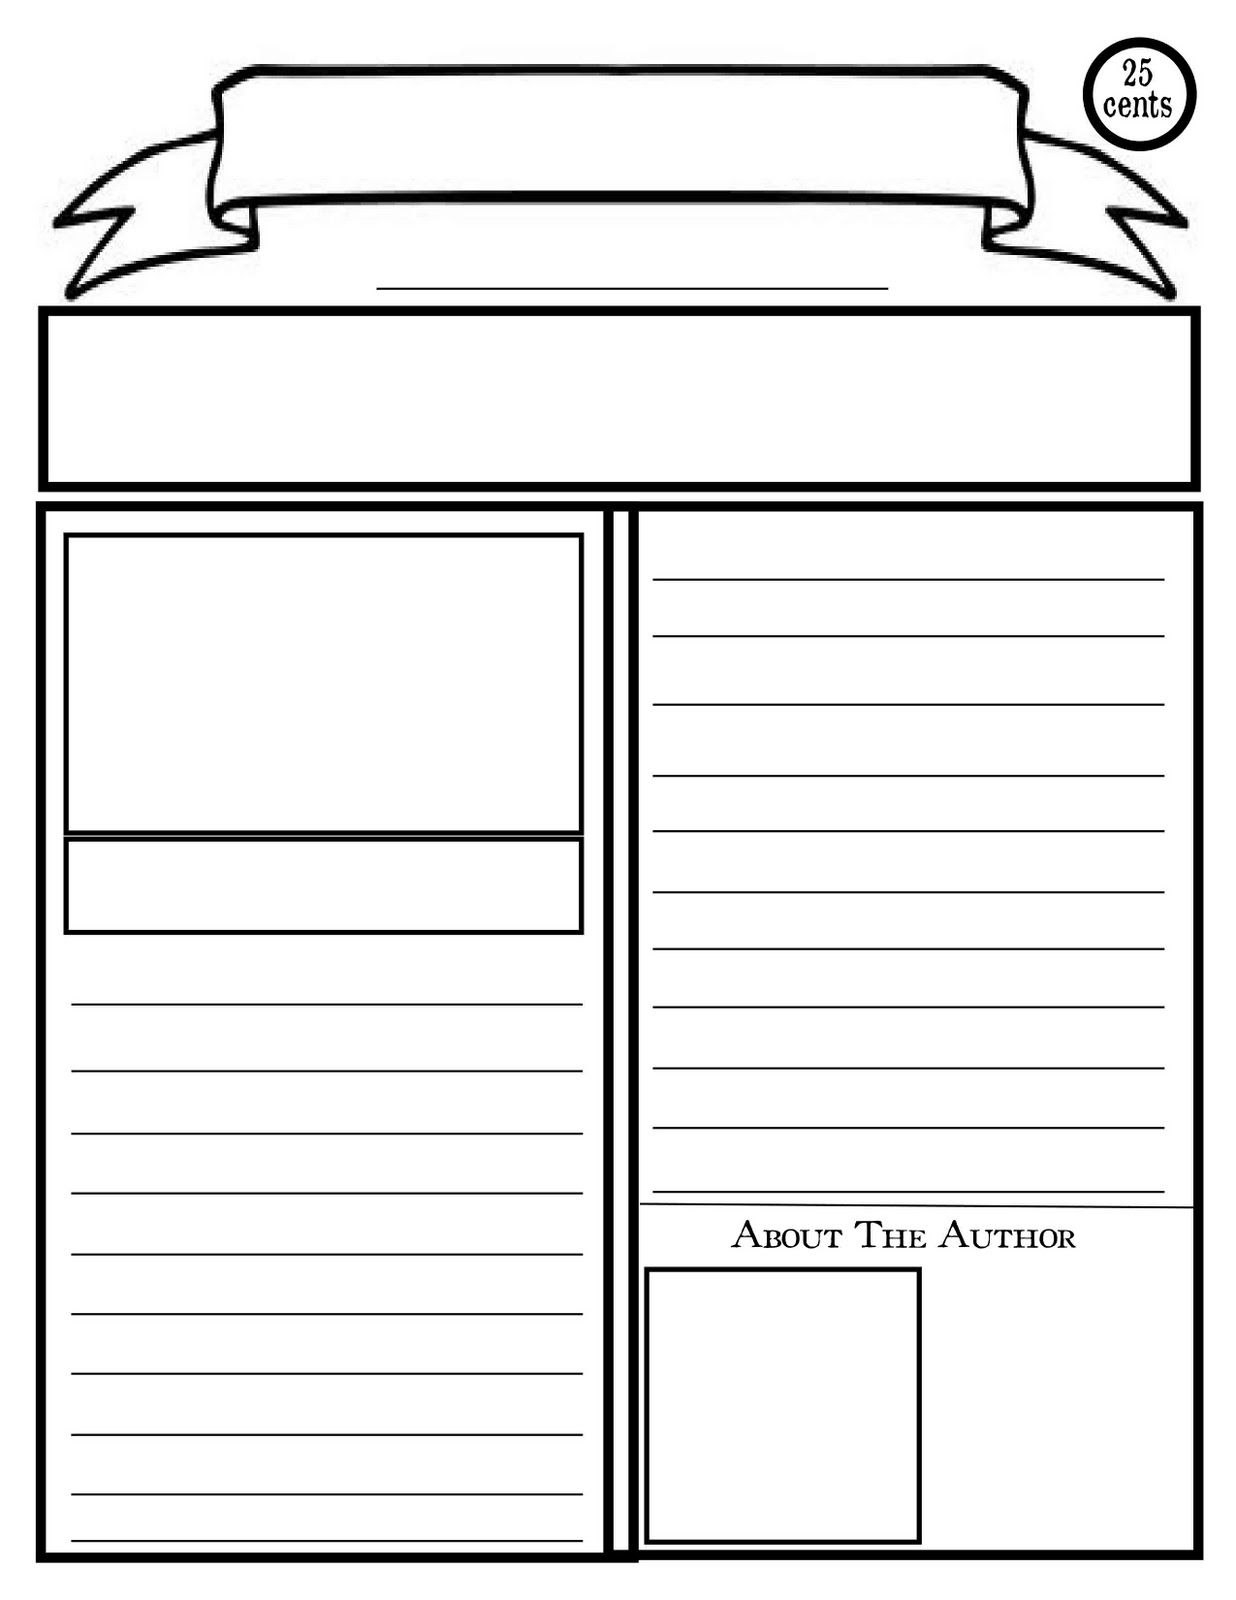 Blank Newspaper Template For Kids Printable  Homework Help Intended For Report Writing Template Ks1